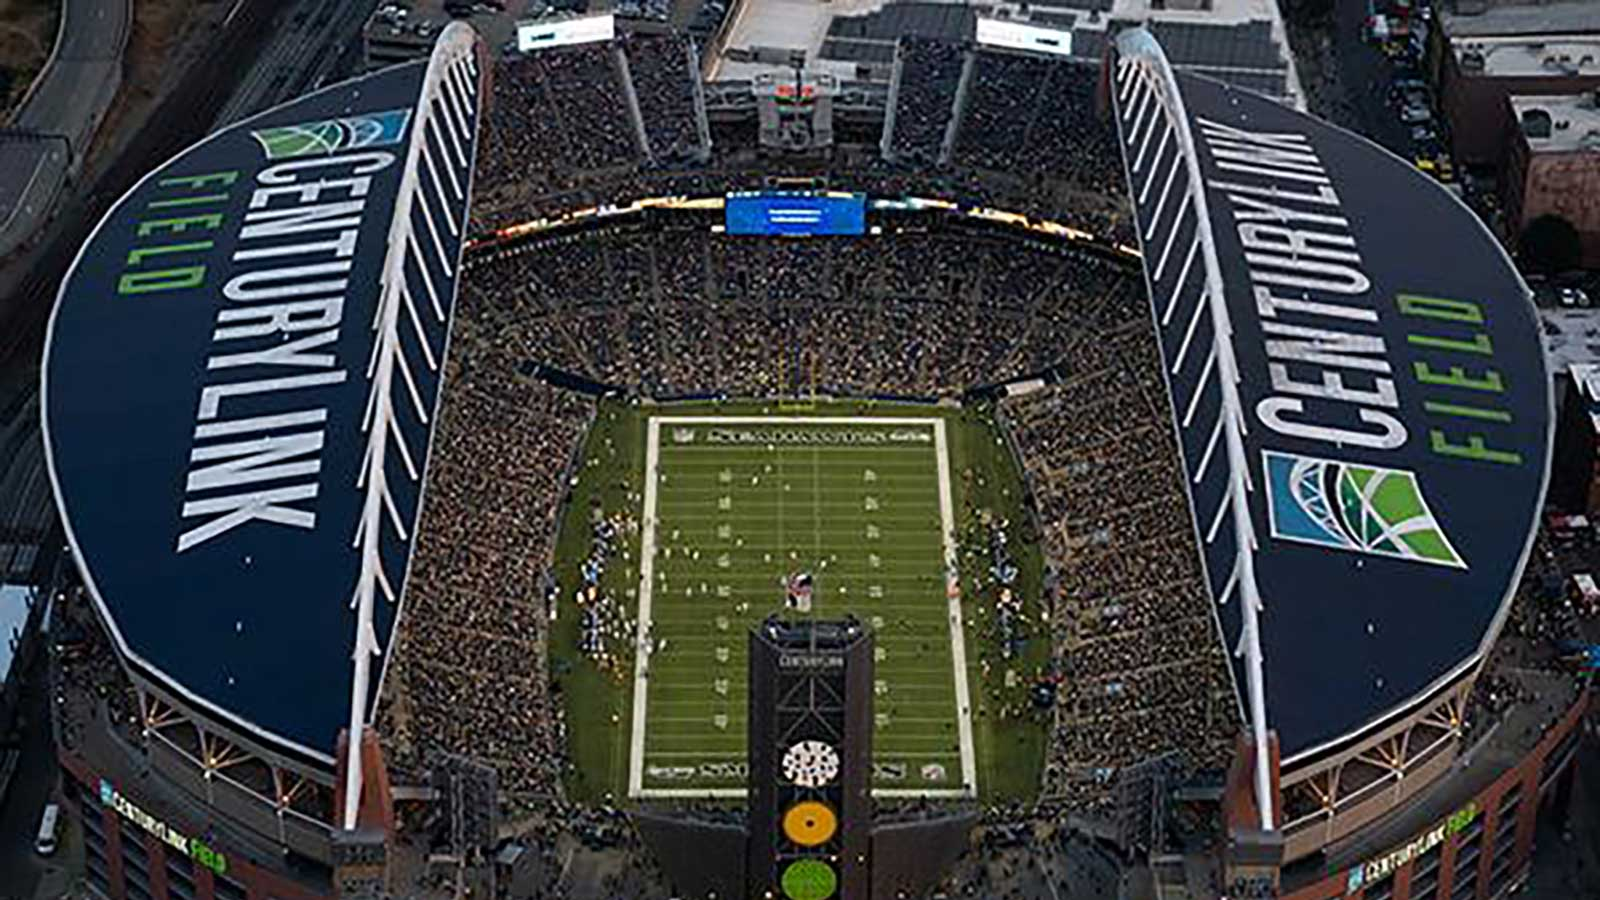 THE LOUDEST SPORTS STADIUMS IN THE WORLD